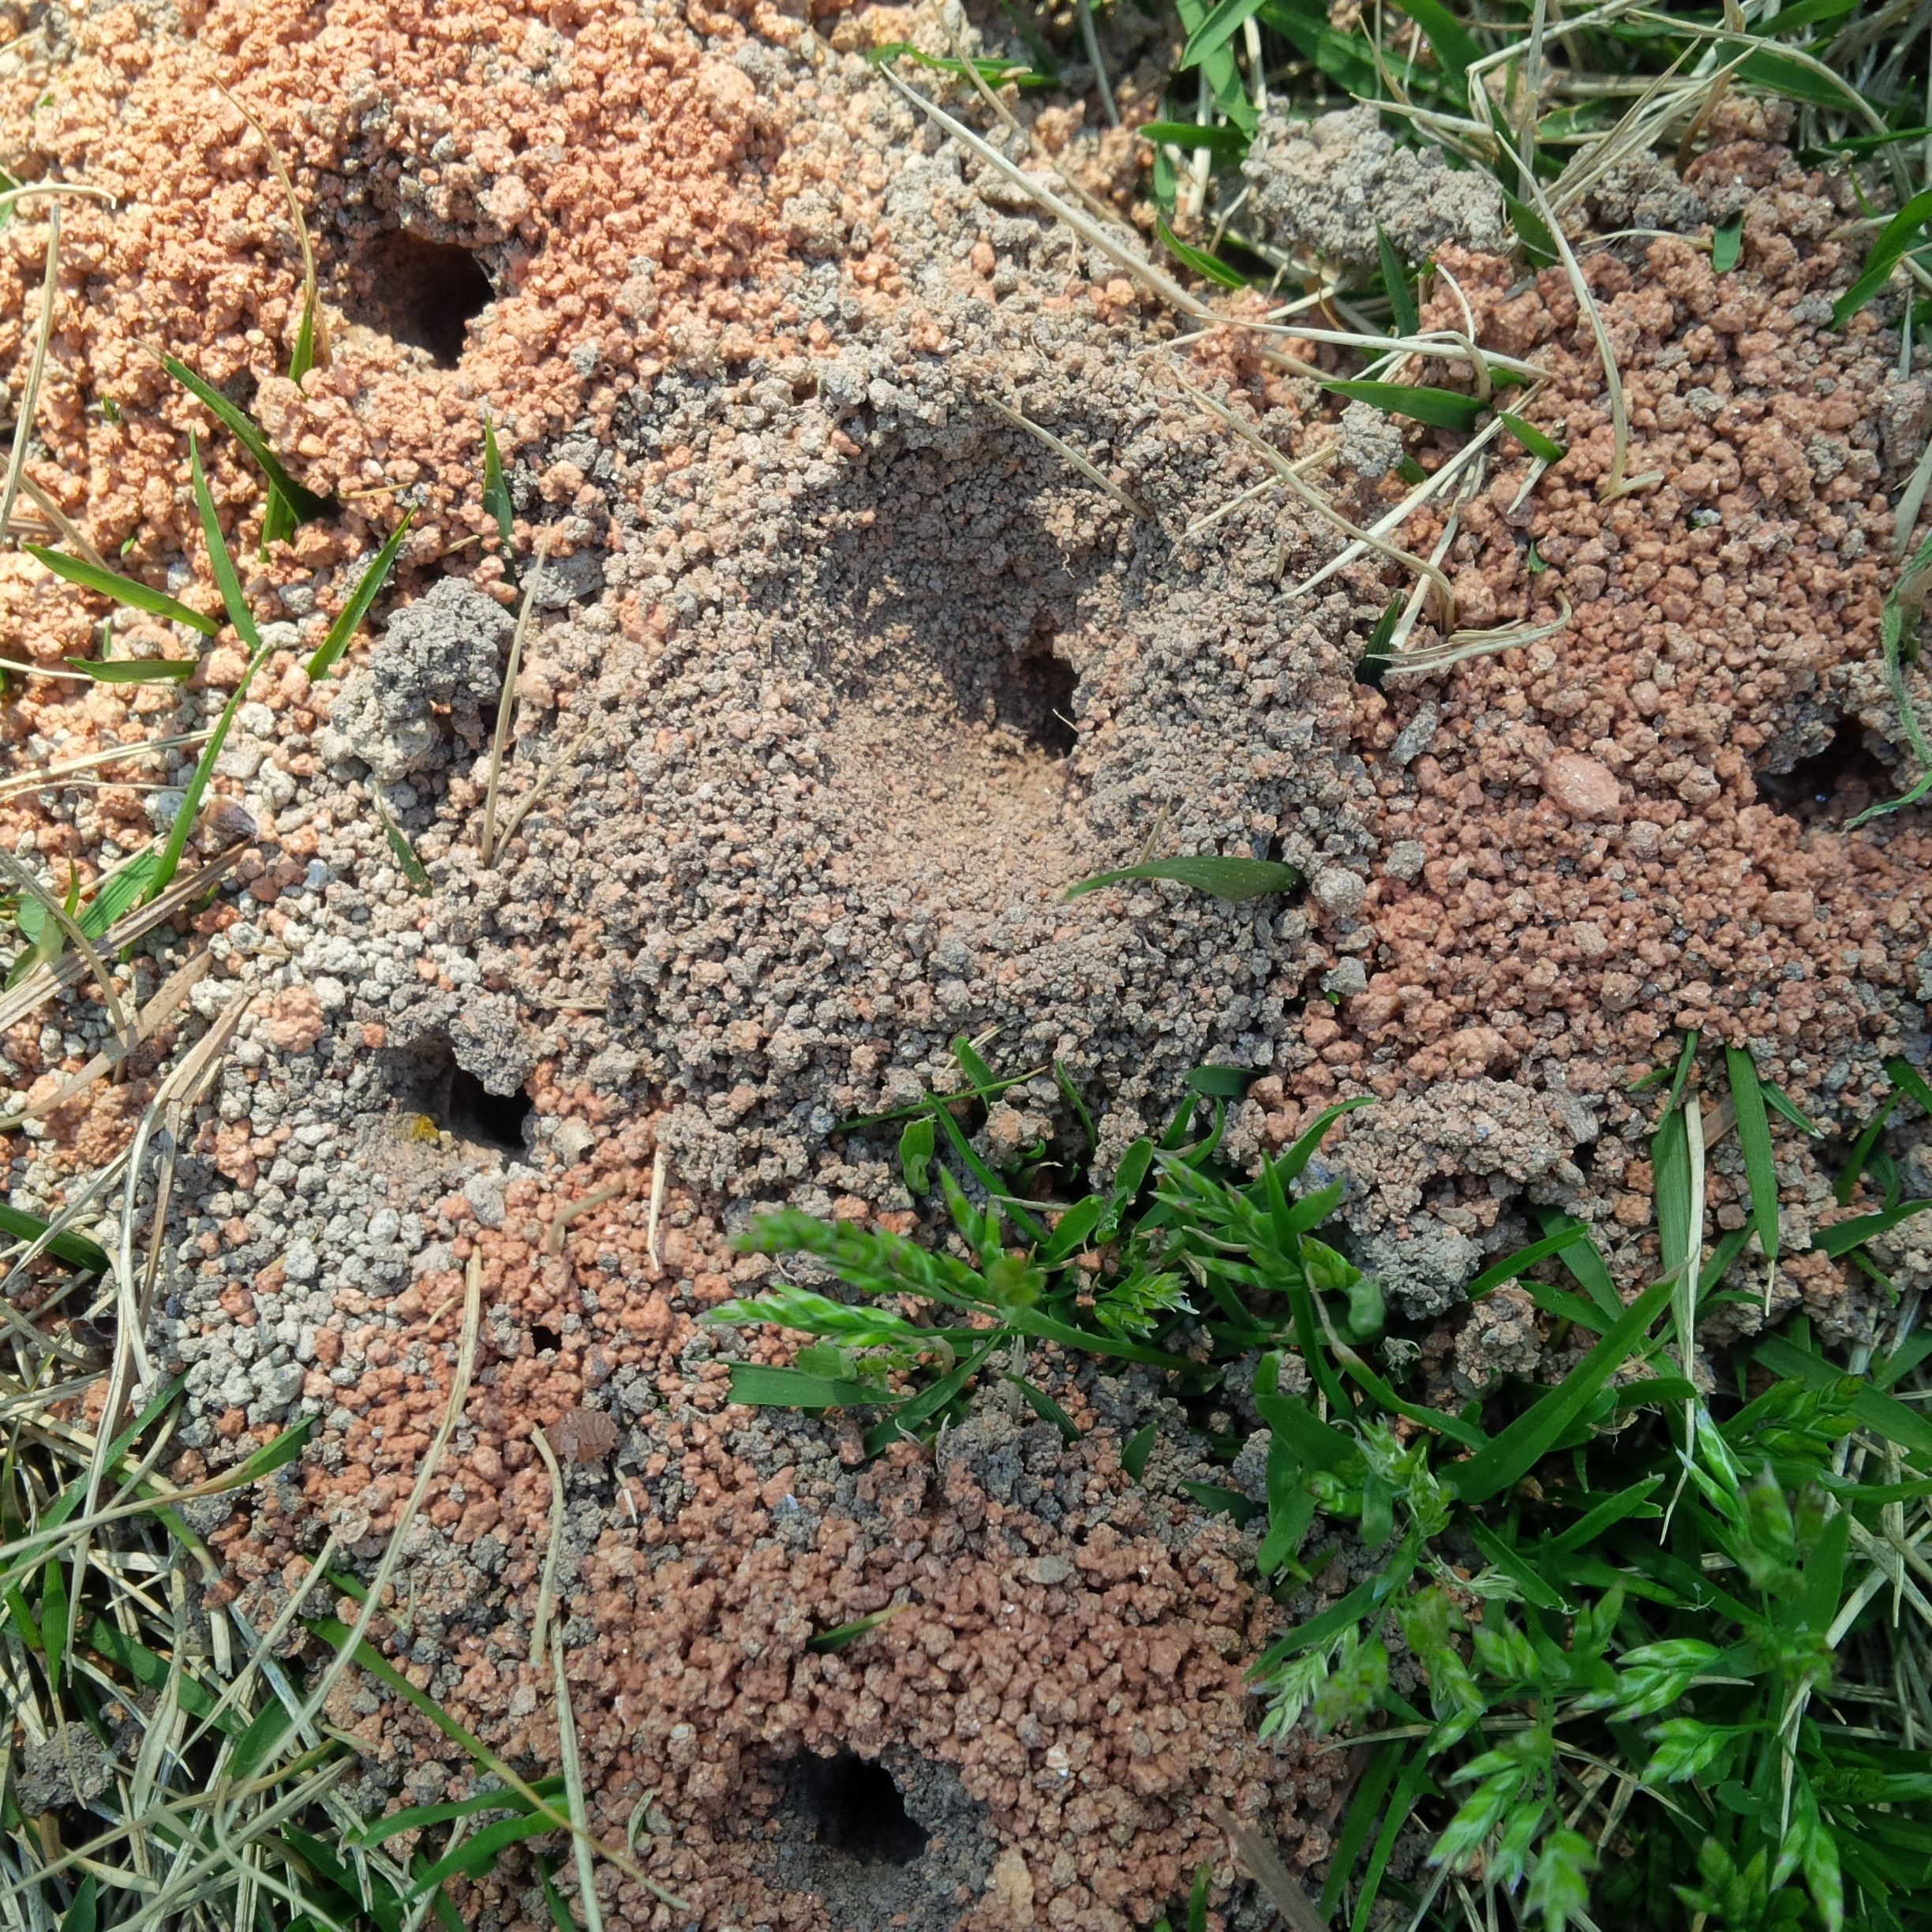 Identifying Ground Bees - Ground bee nests in lawnIdentifying Bees Nests